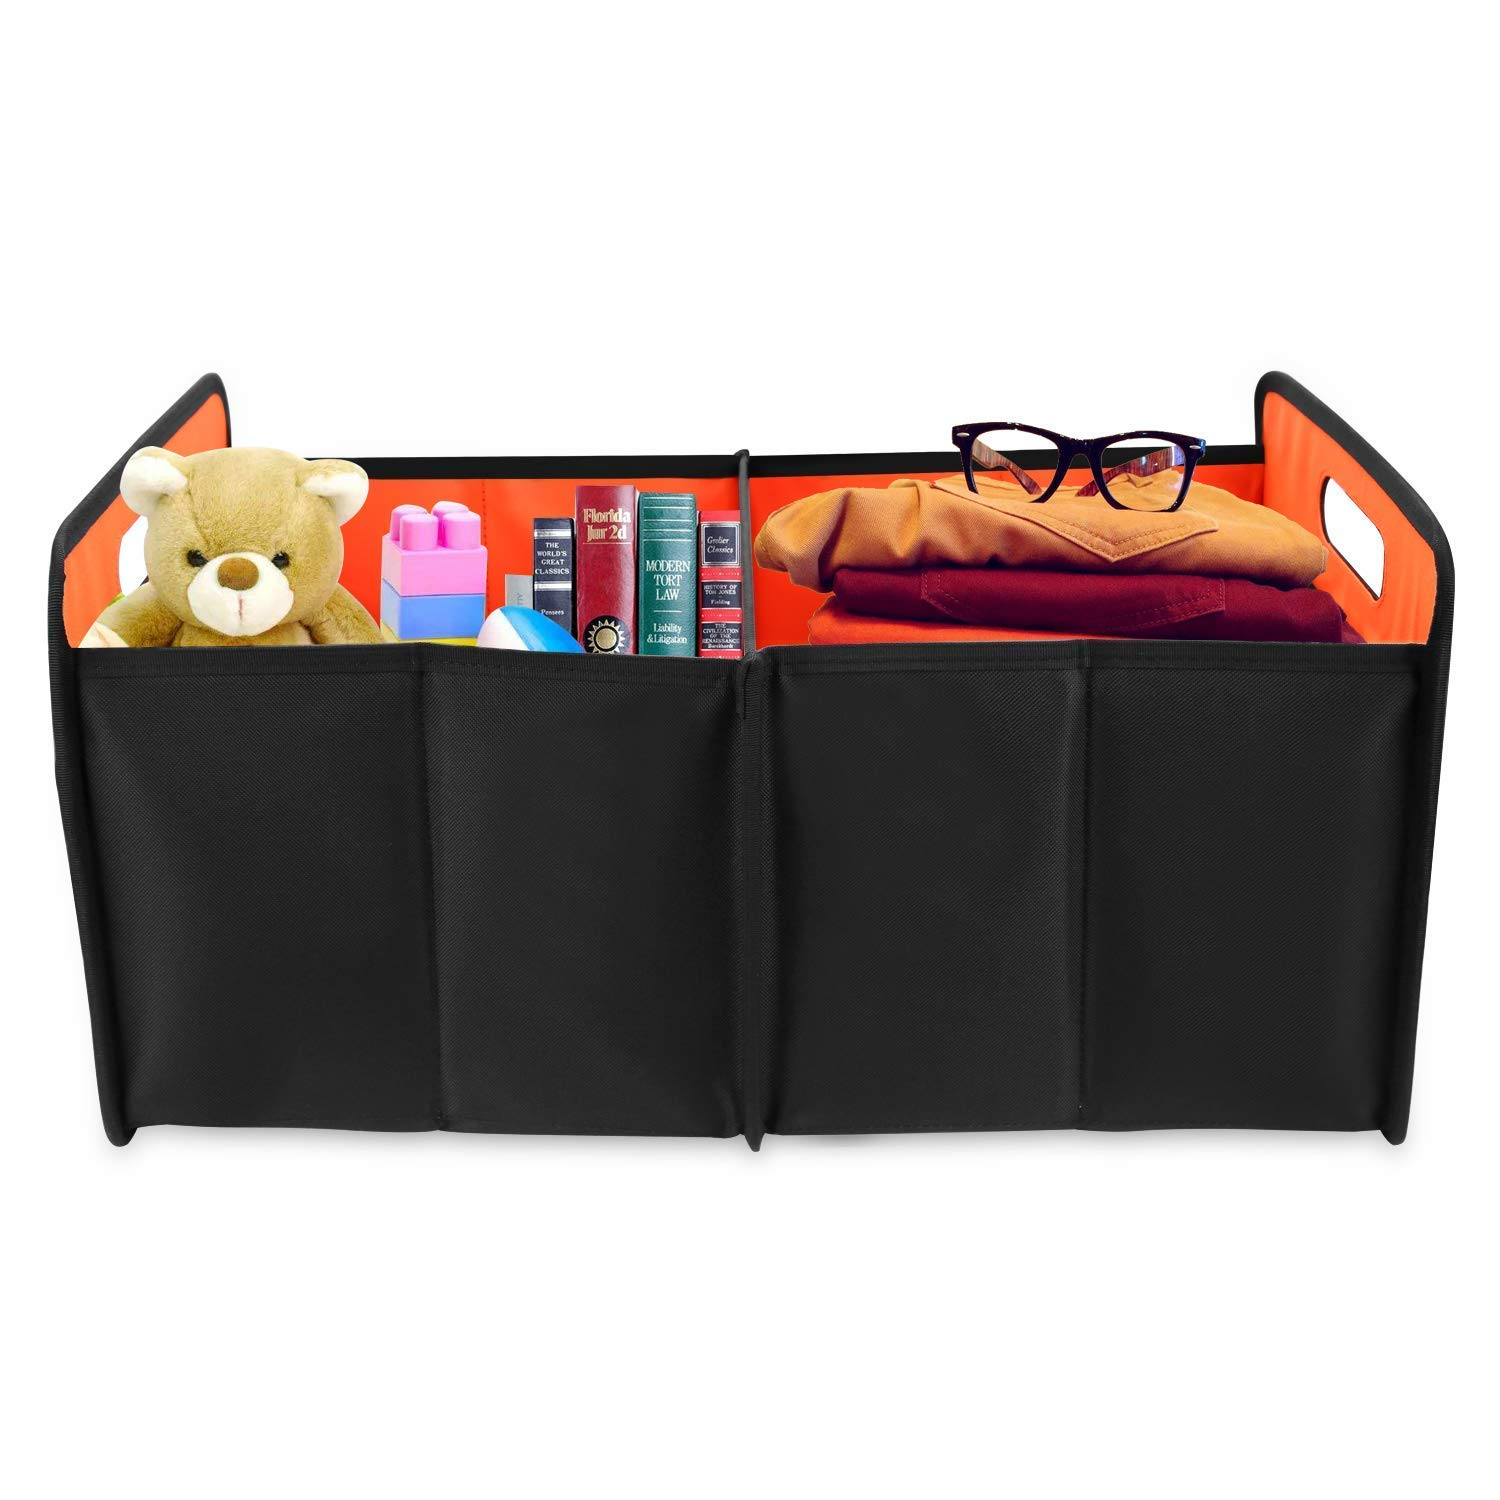 Collapsible Foldable Auto Trunk Organizer Storage Bin Cubes Black Truck Vehicle Portable Grocery Cargo Container for SUV Home and Office AsFrost Car Trunk Organizer Basket